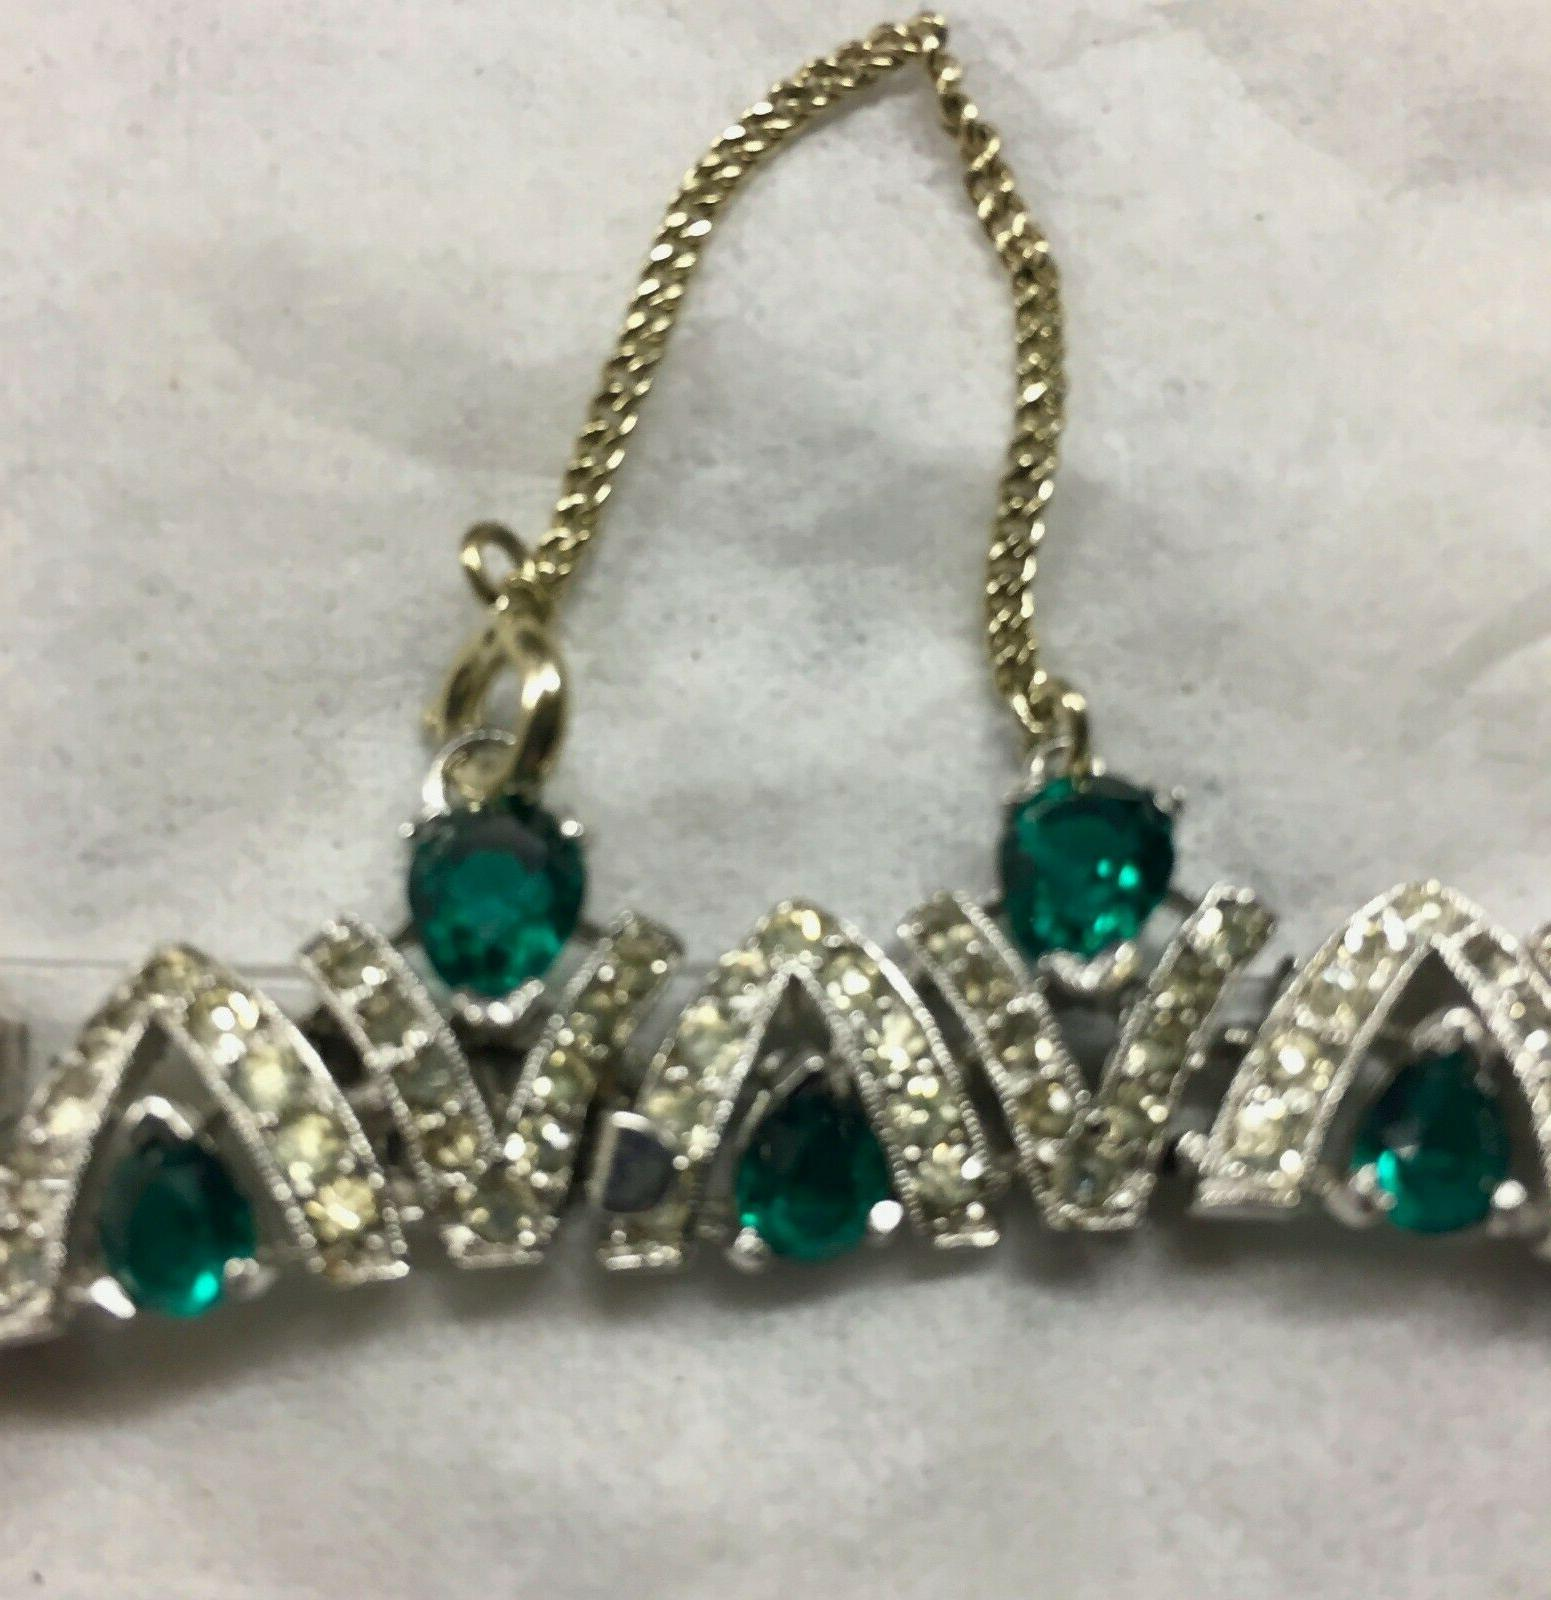 & Emerald Necklace - FREE SHIPPING